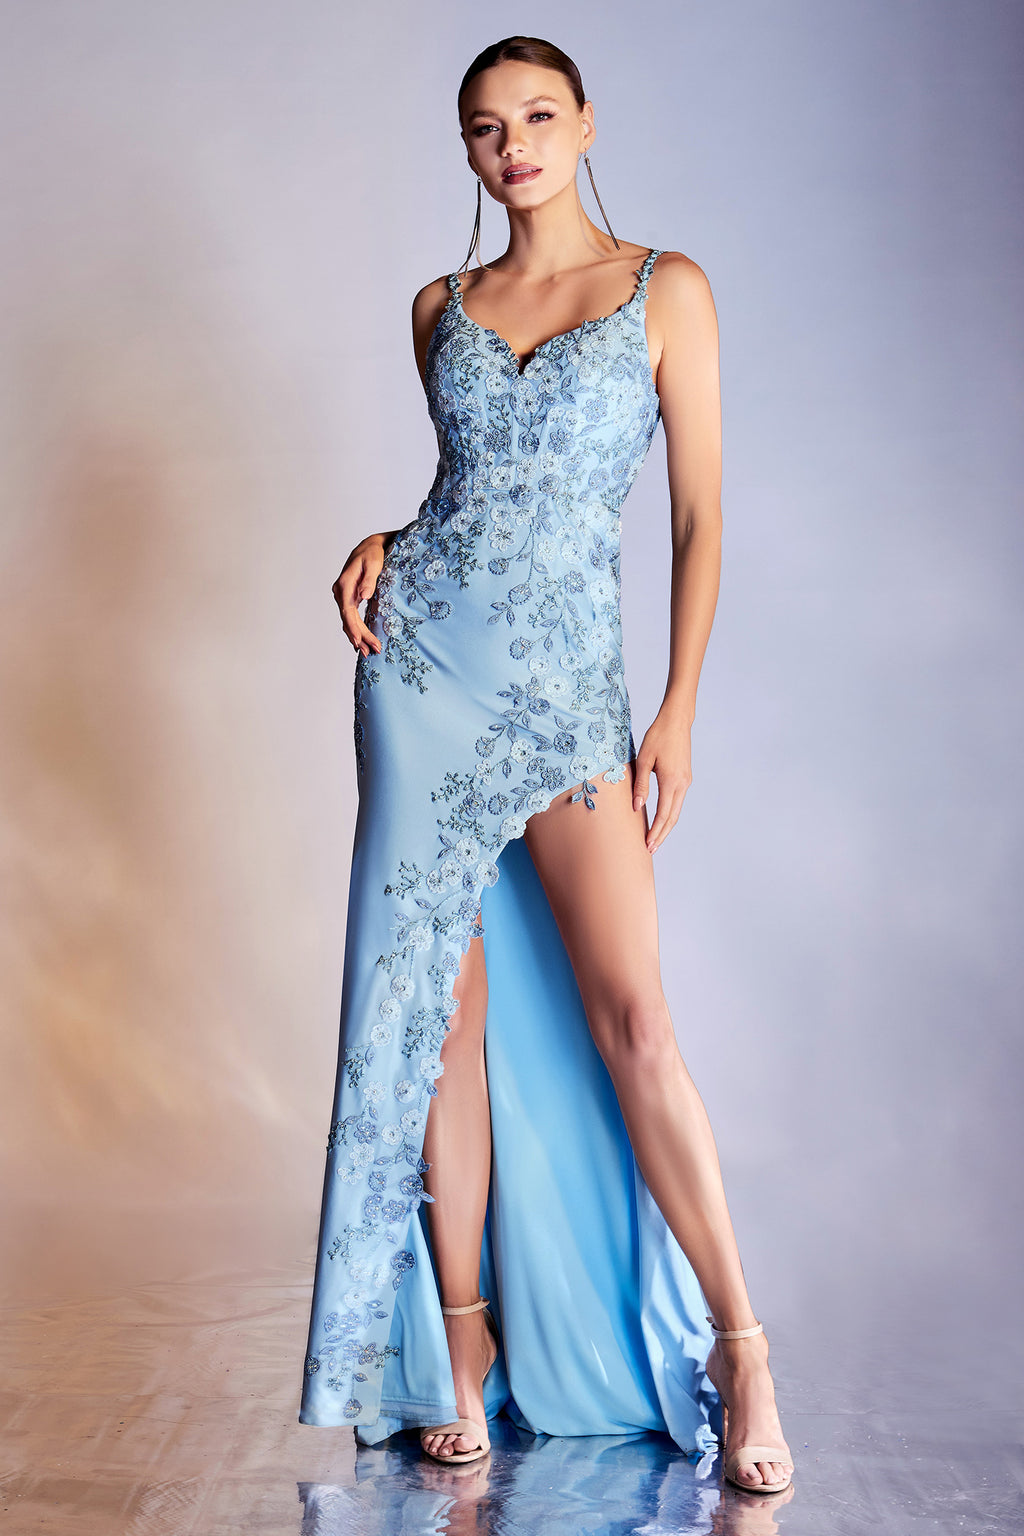 Gorgeous Long Gown with Embroidered Bodice and Leg Slit #CDCM315